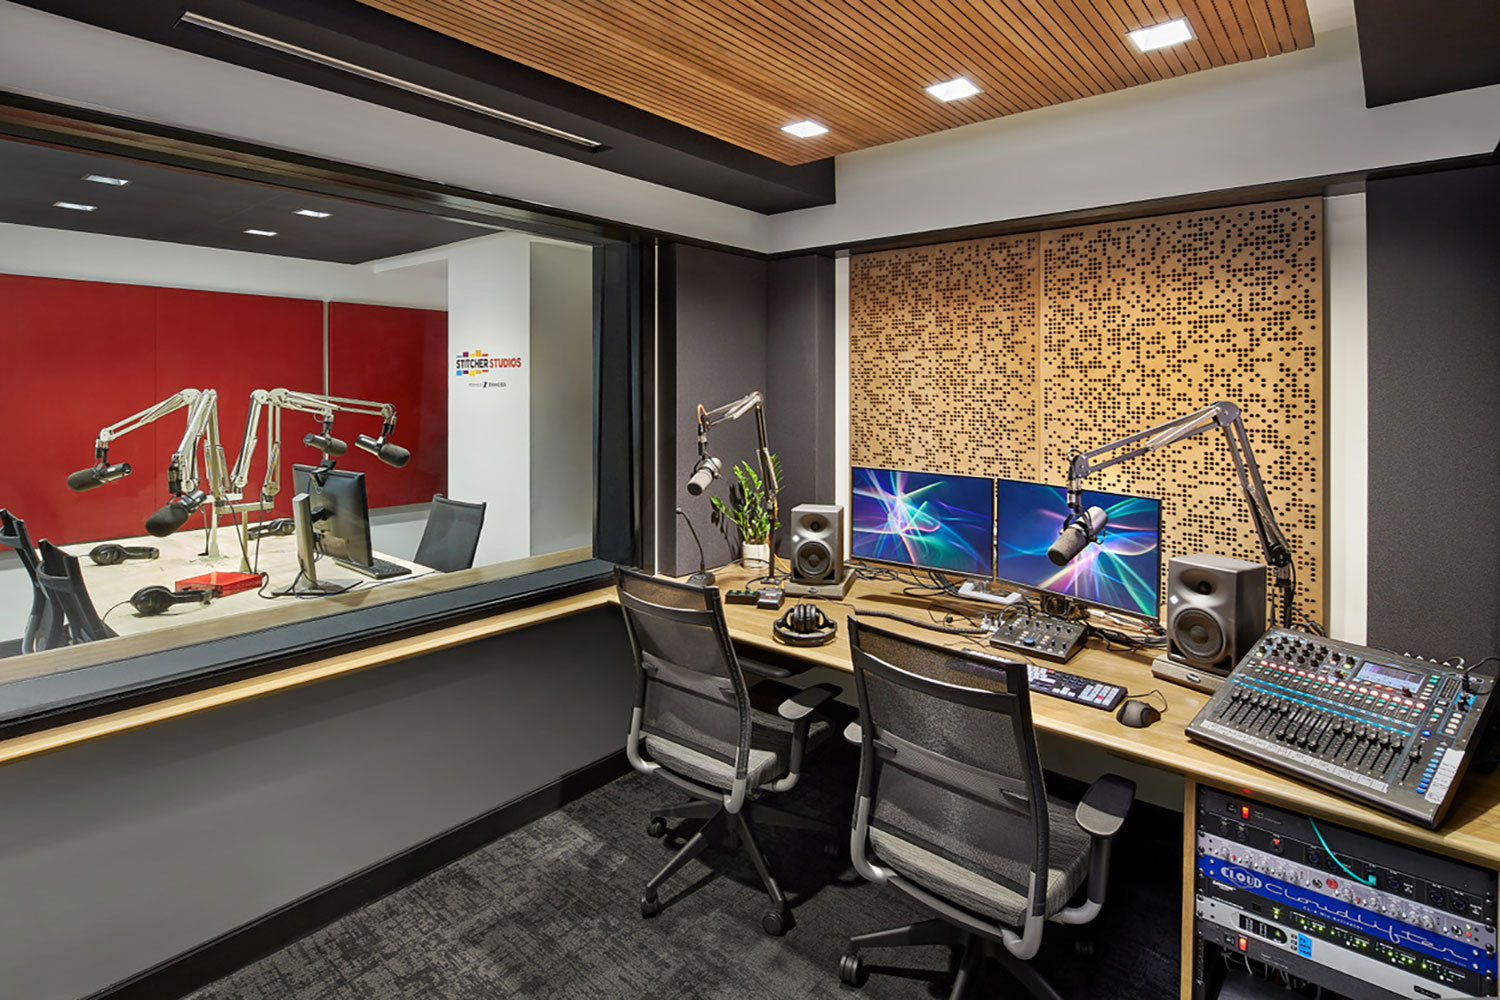 Stitcher is among the earliest, the most creative and most successful podcast creator companies. Their team made a move to build out larger production facilities in both its NY and LA offices and they chose WSDG to design their new podcast studios facilities. Control B.